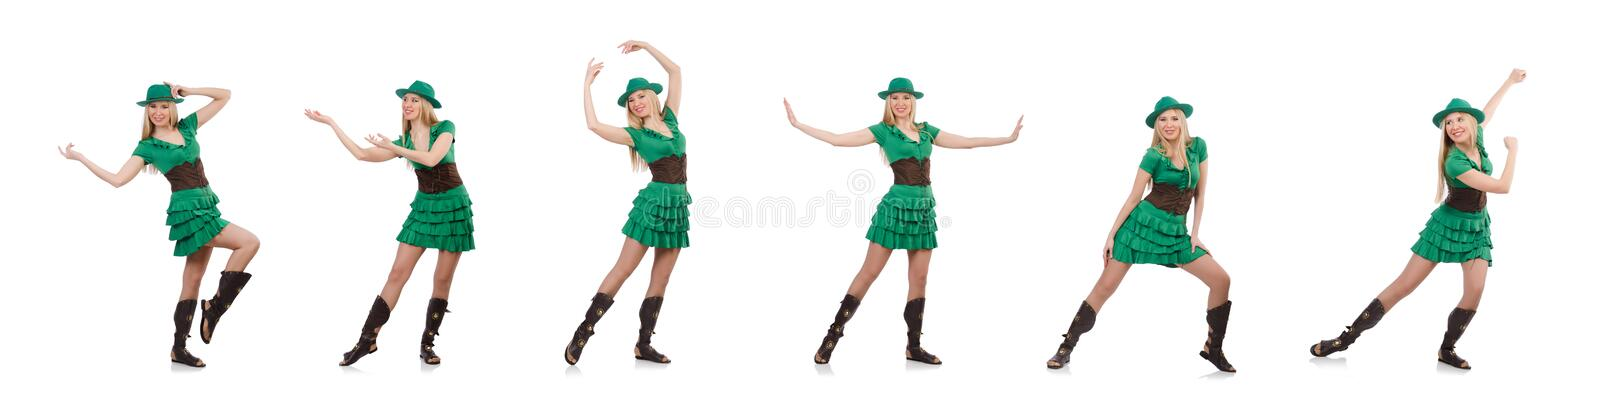 Woman in saint patrick concept royalty free stock photography